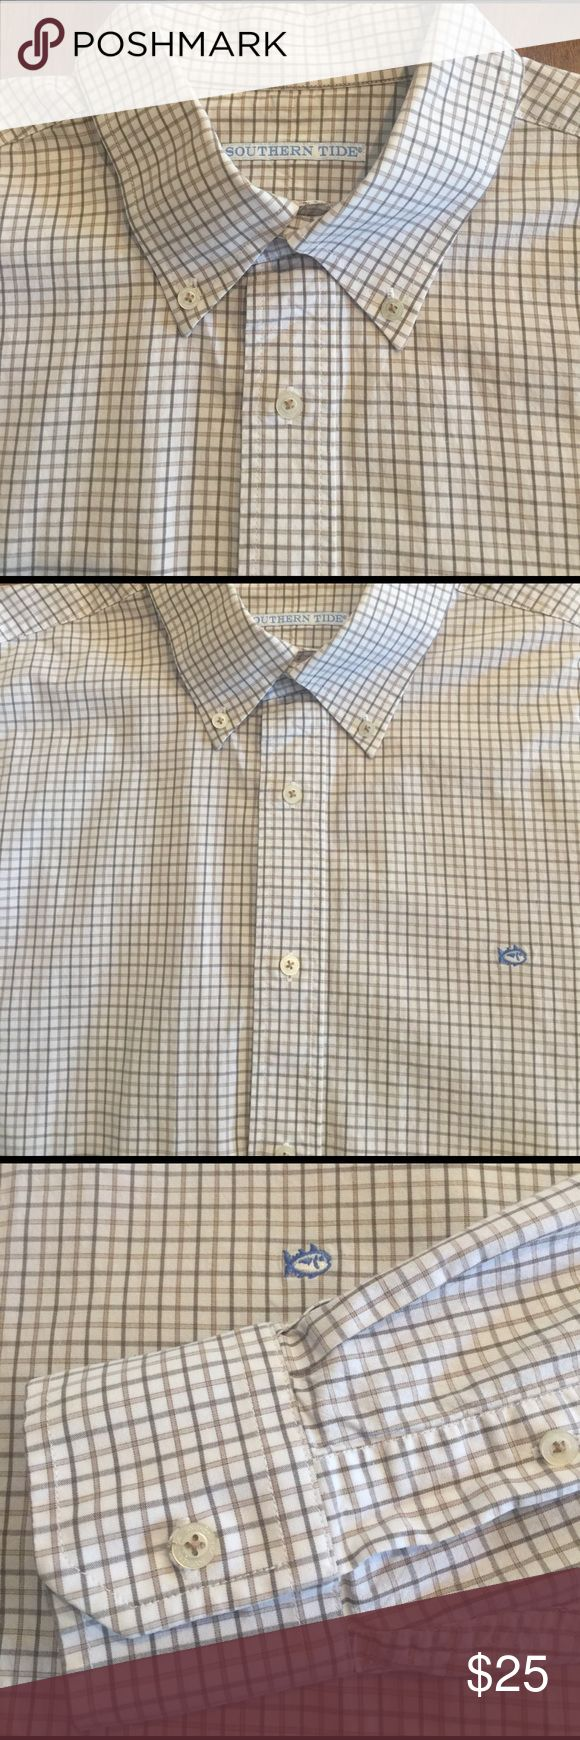 Southern Tide Shirt Men's Southern Tide dress shirt. Size XL. Button down collar. No stains or rips on shirt. Southern Tide Shirts Dress Shirts